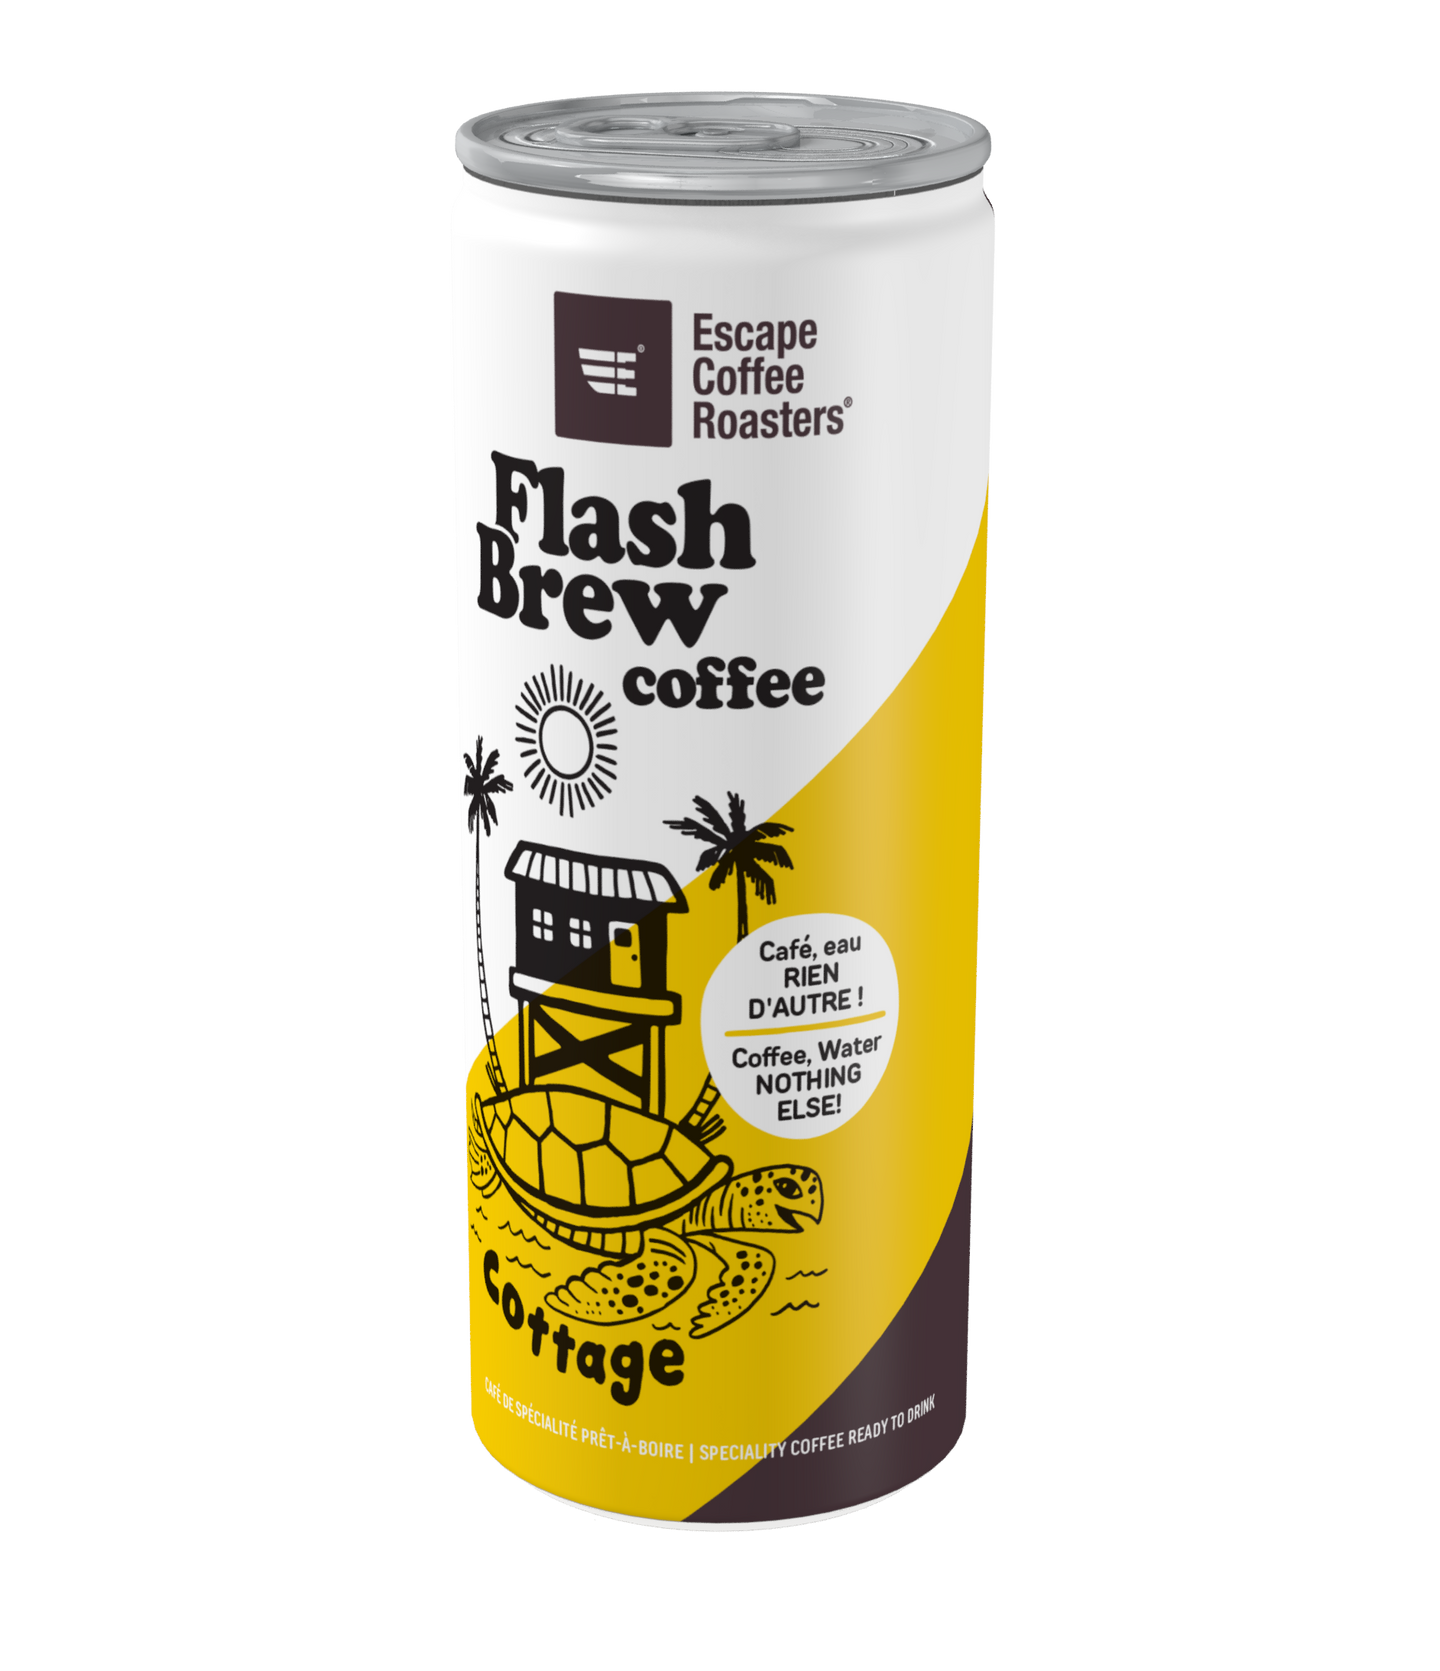 Flash Brew - Cottage